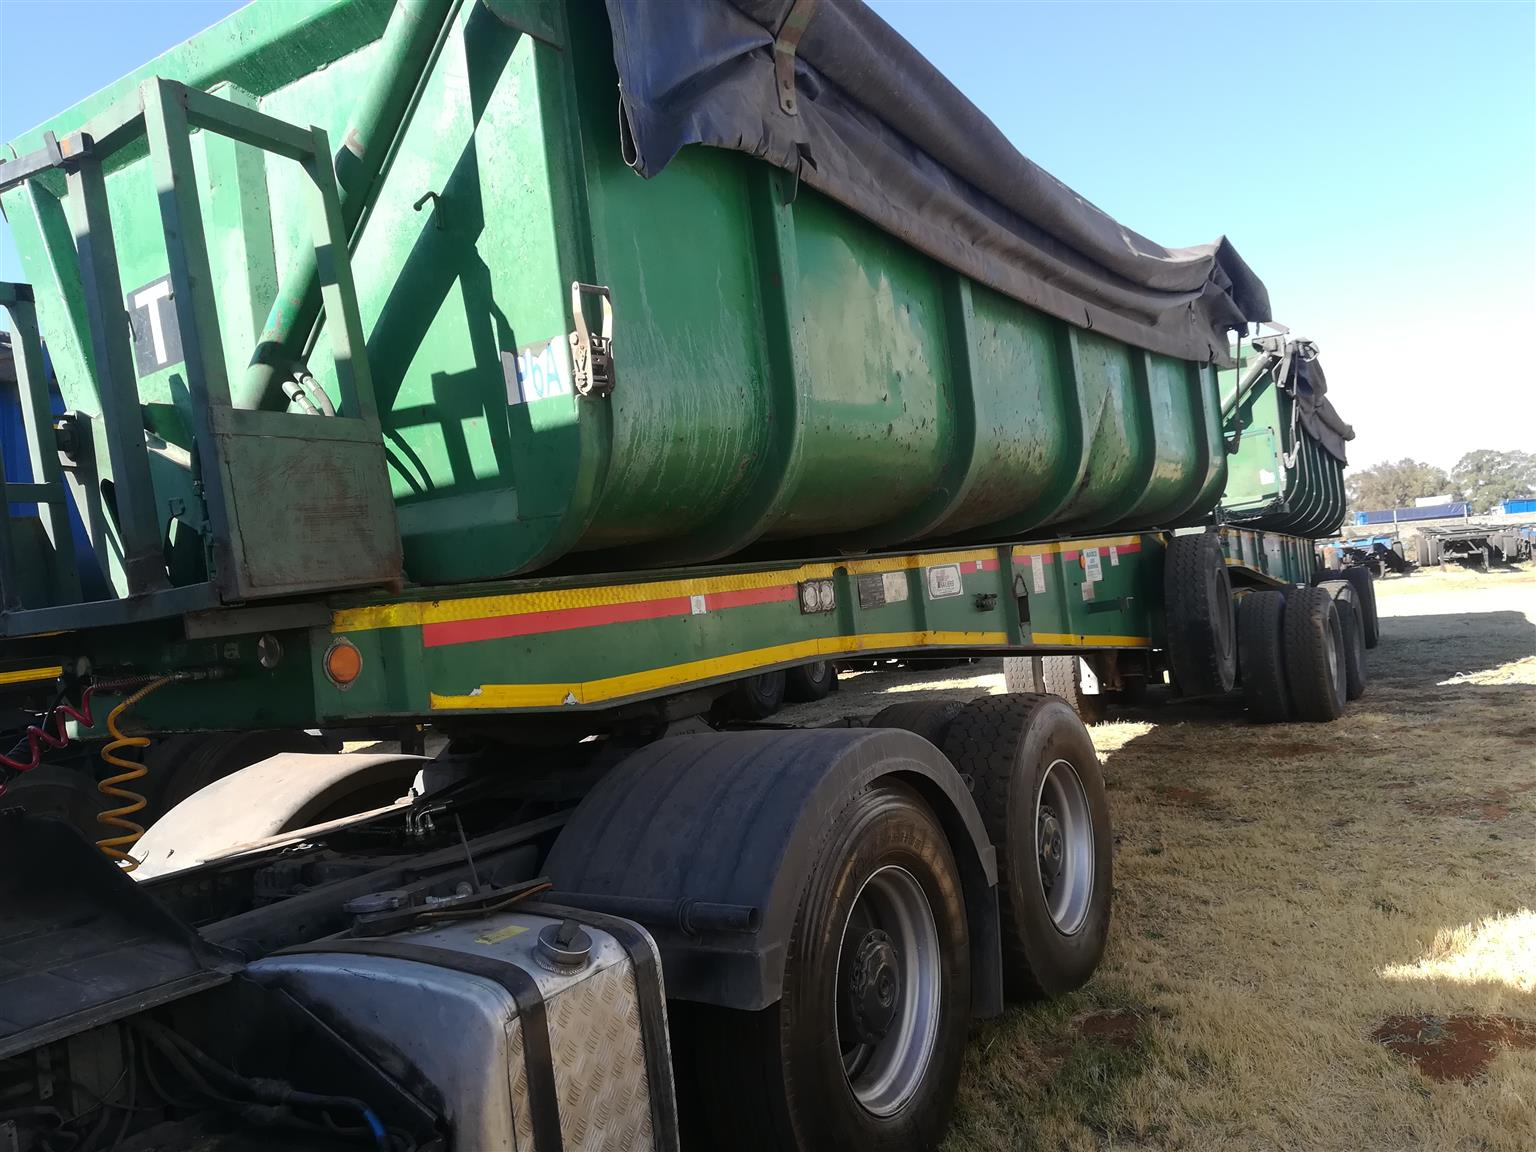 Start Your Own Trucking Business, 34 Ton Side Tippers, Become A Trucker, New Truckers Welcome, Kwazulu-Natal Province, South Africa